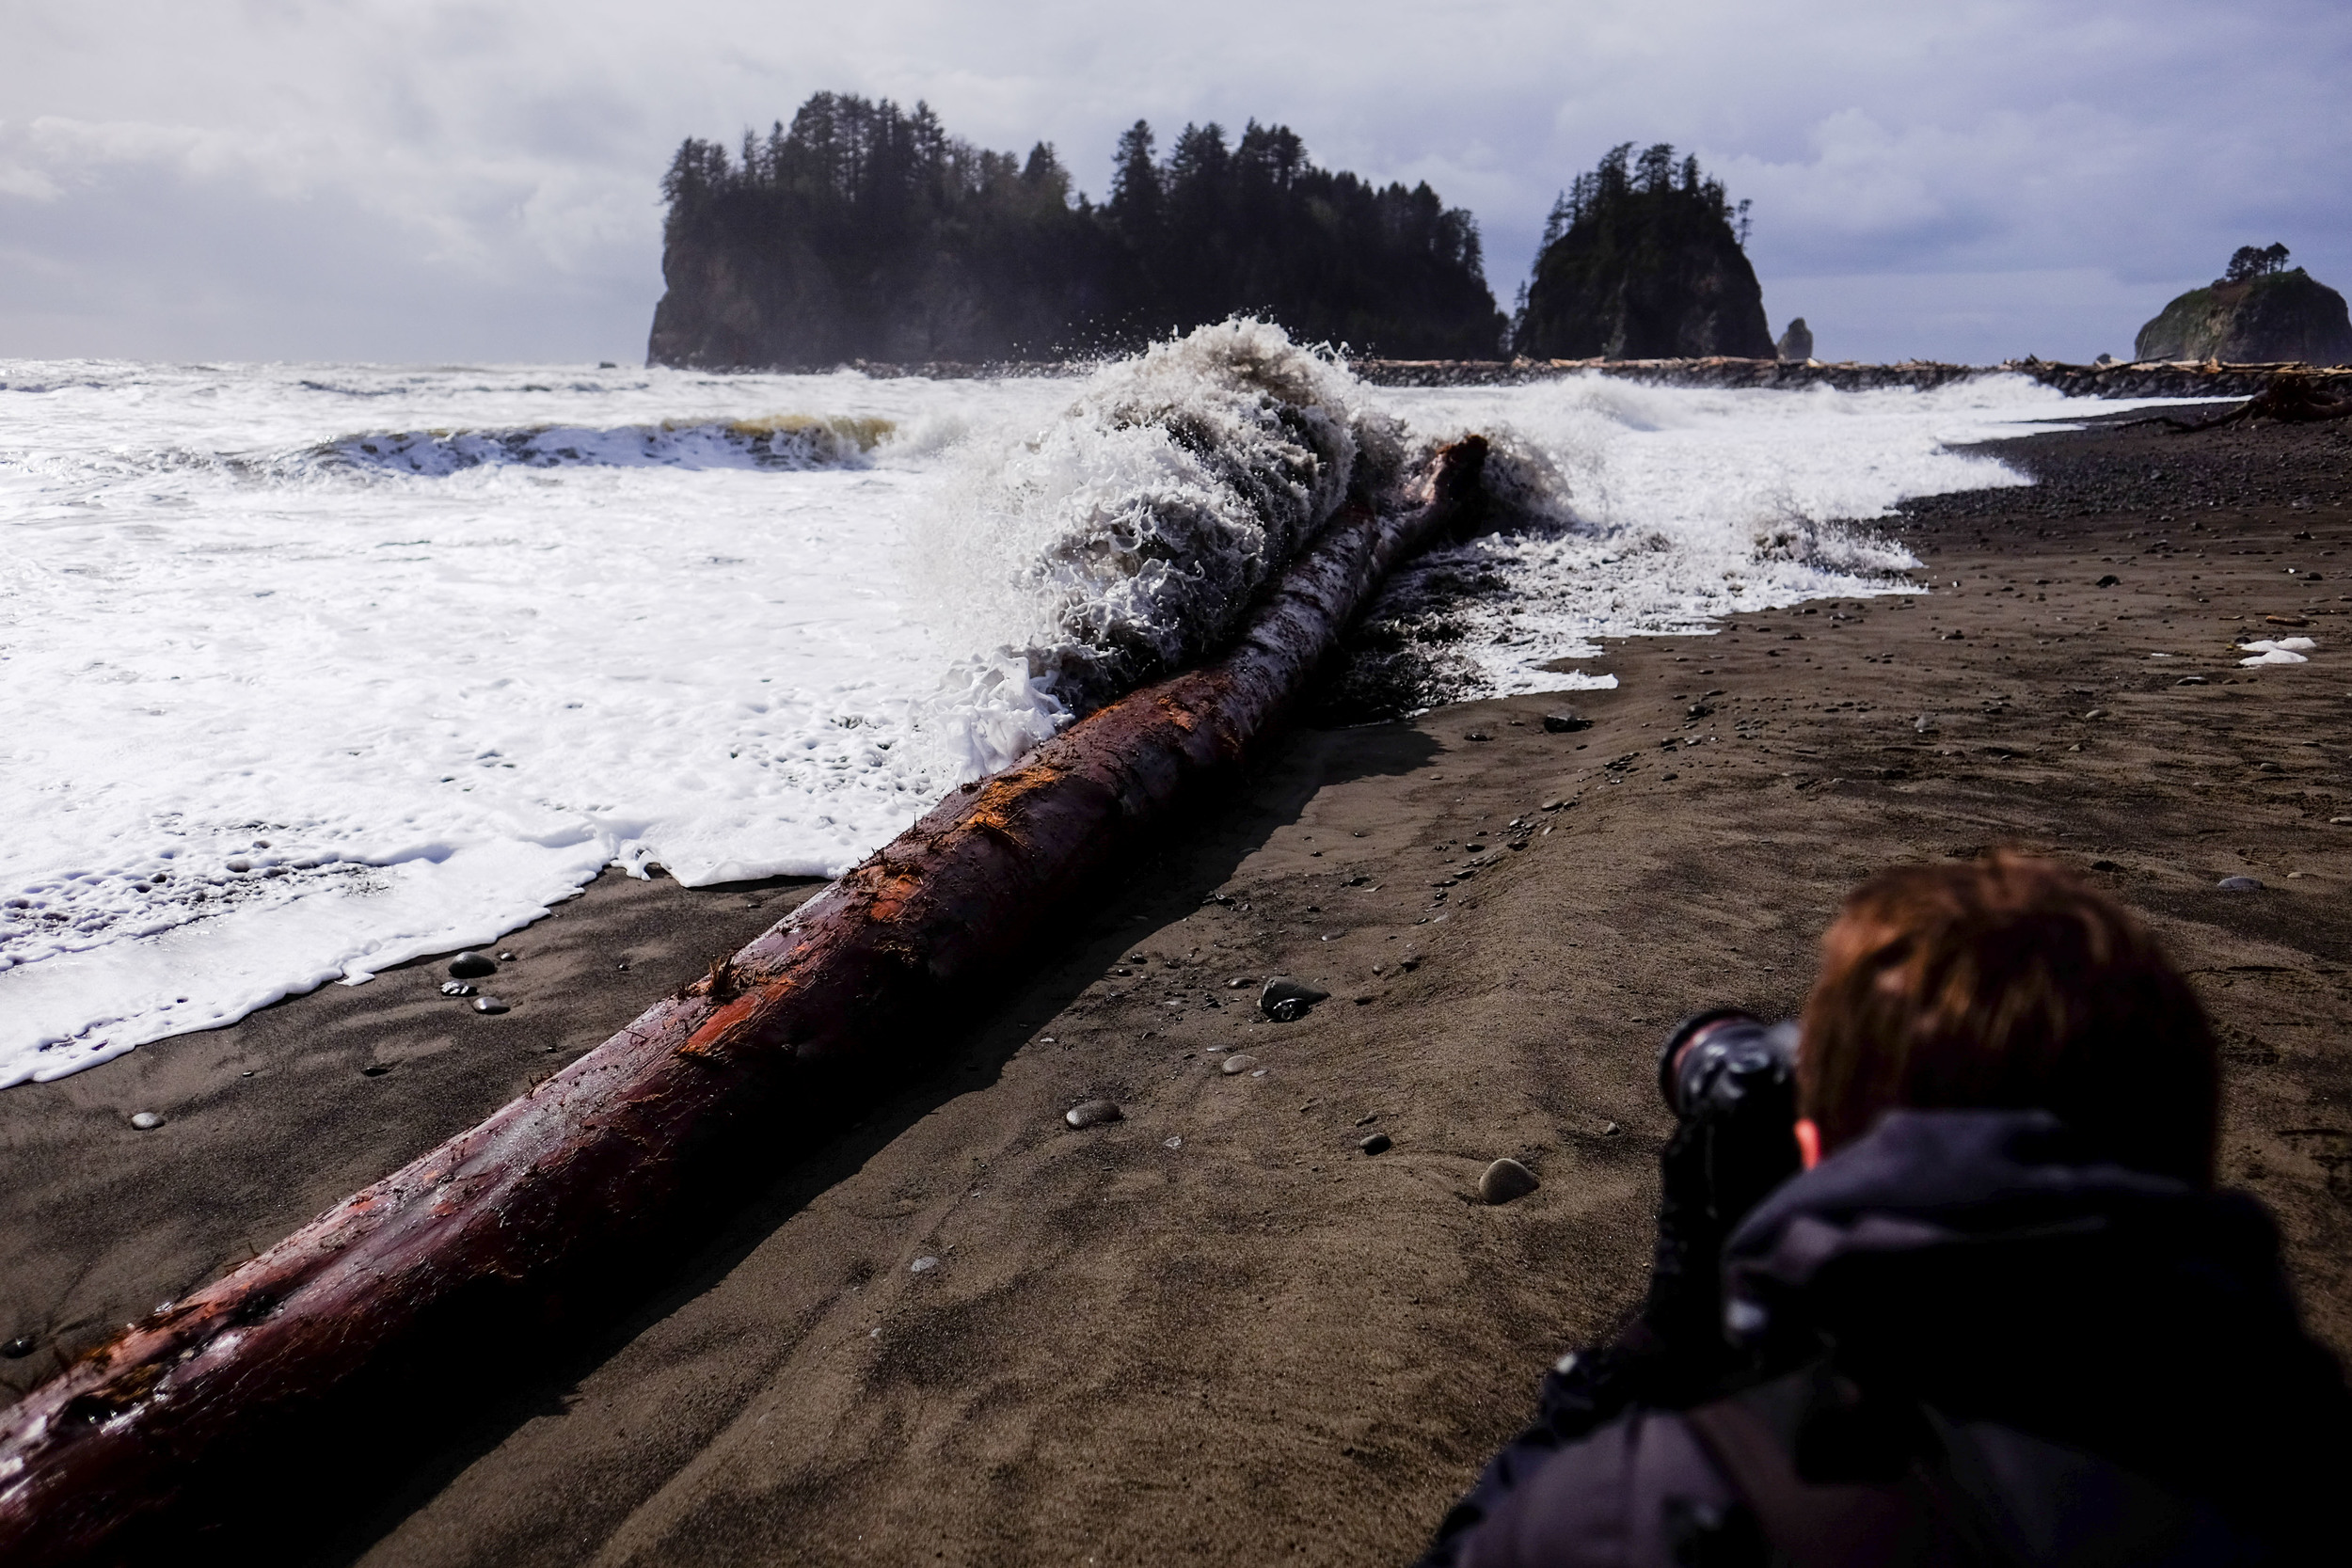 When two photographers try to get shots of a wave hit a log... and then having to run back to avoid getting soaked.